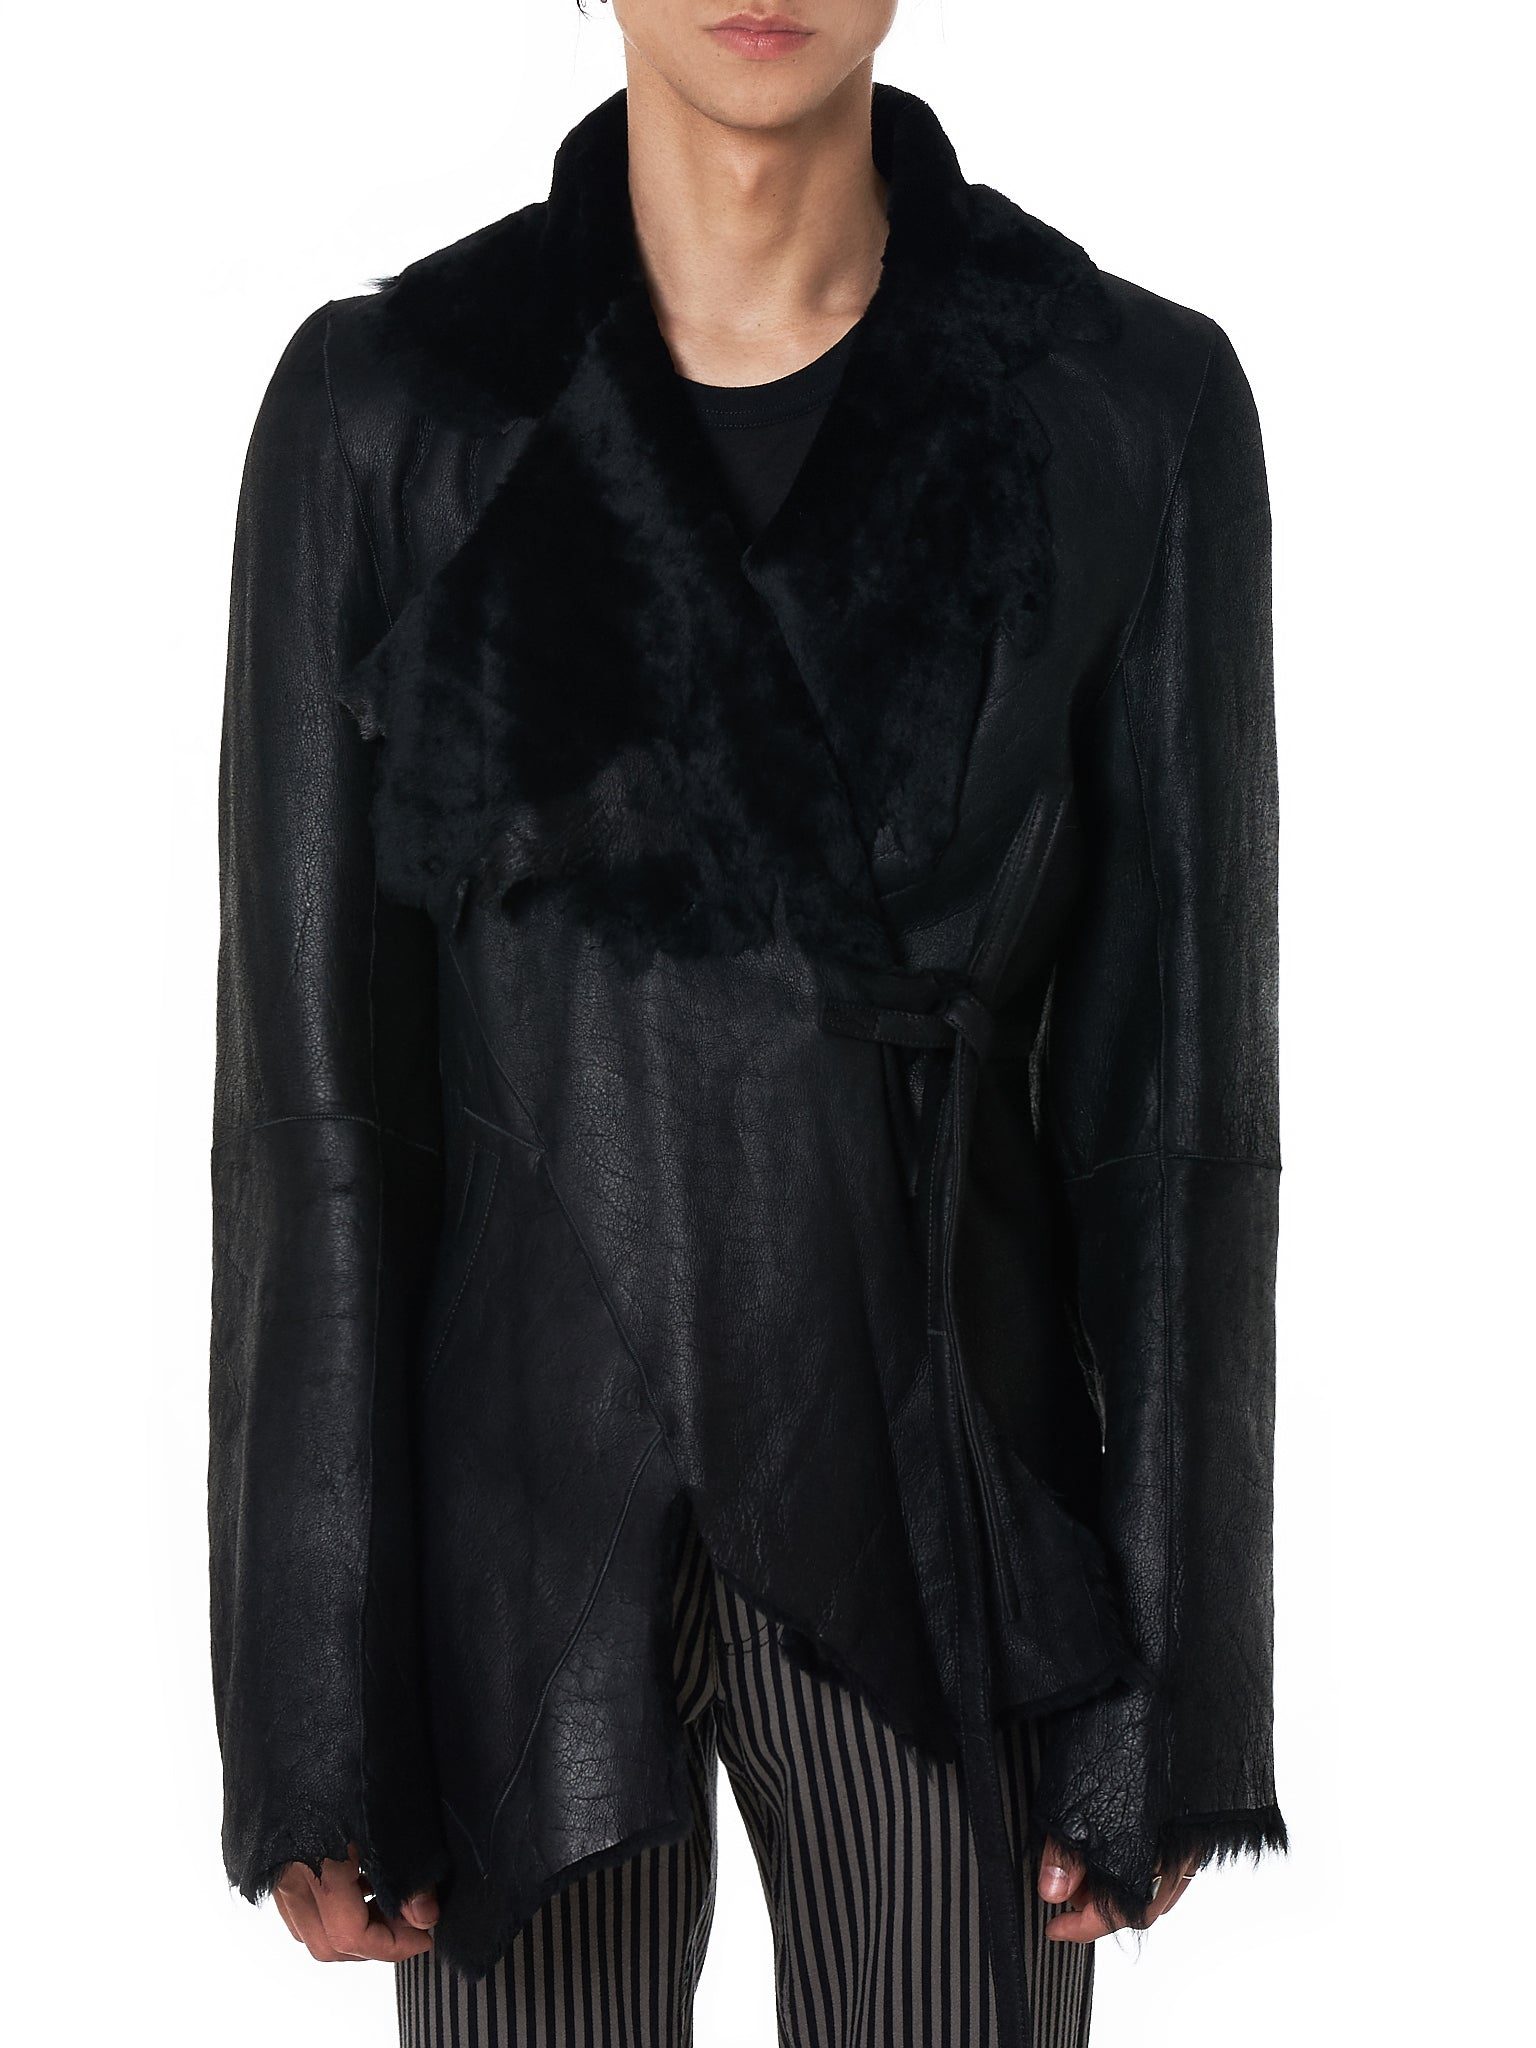 Ann Demeulemeester Leather Jacket - Hlorenzo Front